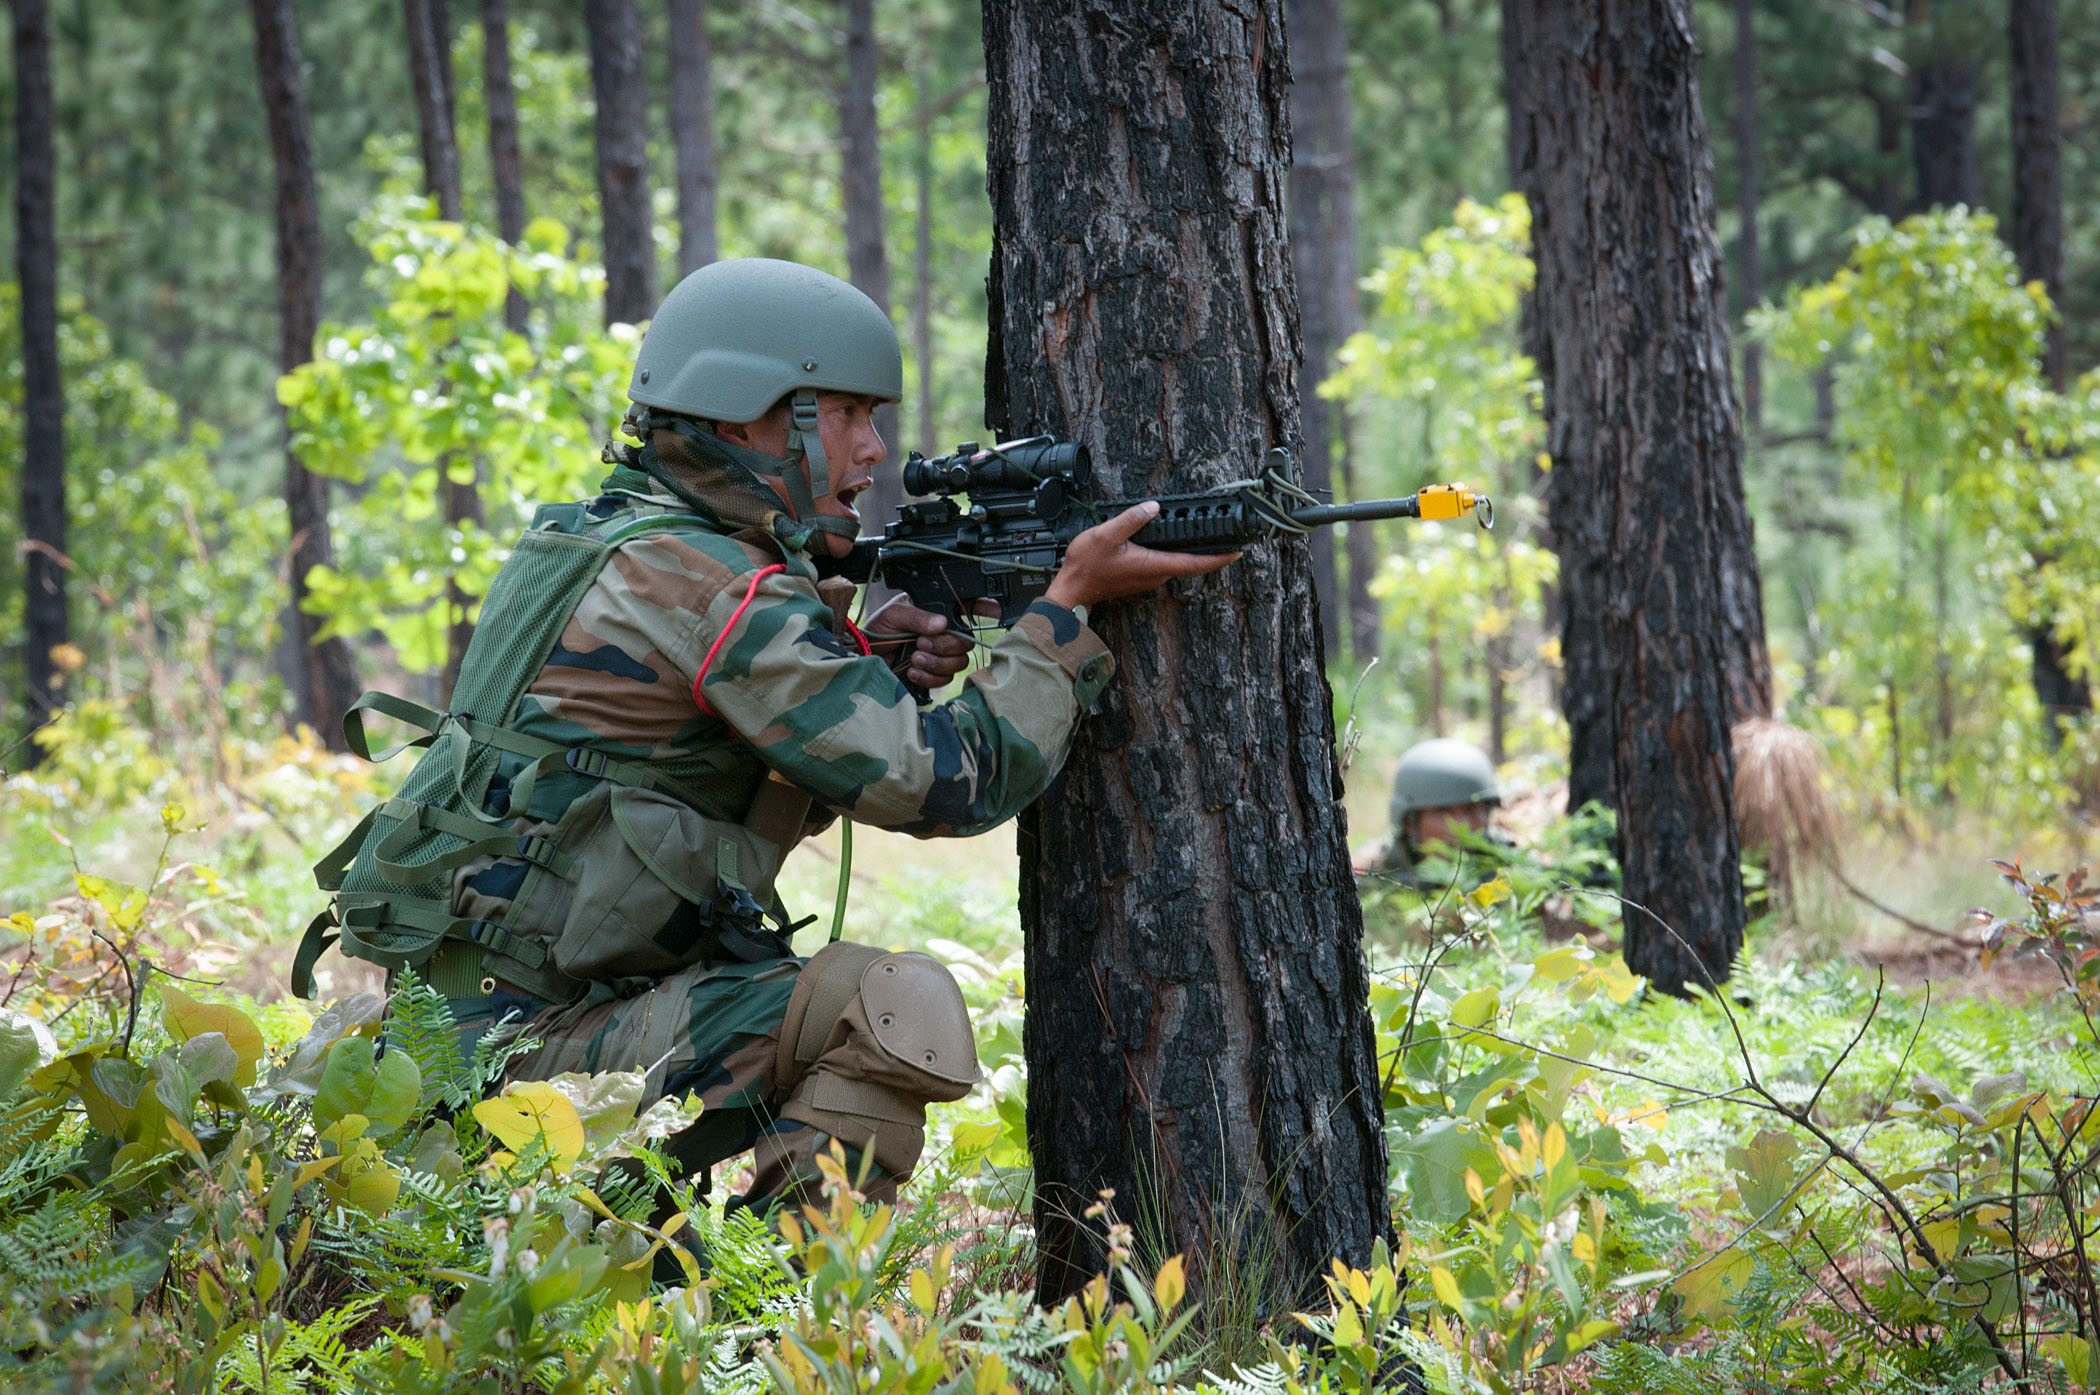 Indian Army Love Images Hd: What Do You Have To Go Through To Become A Soldier In The